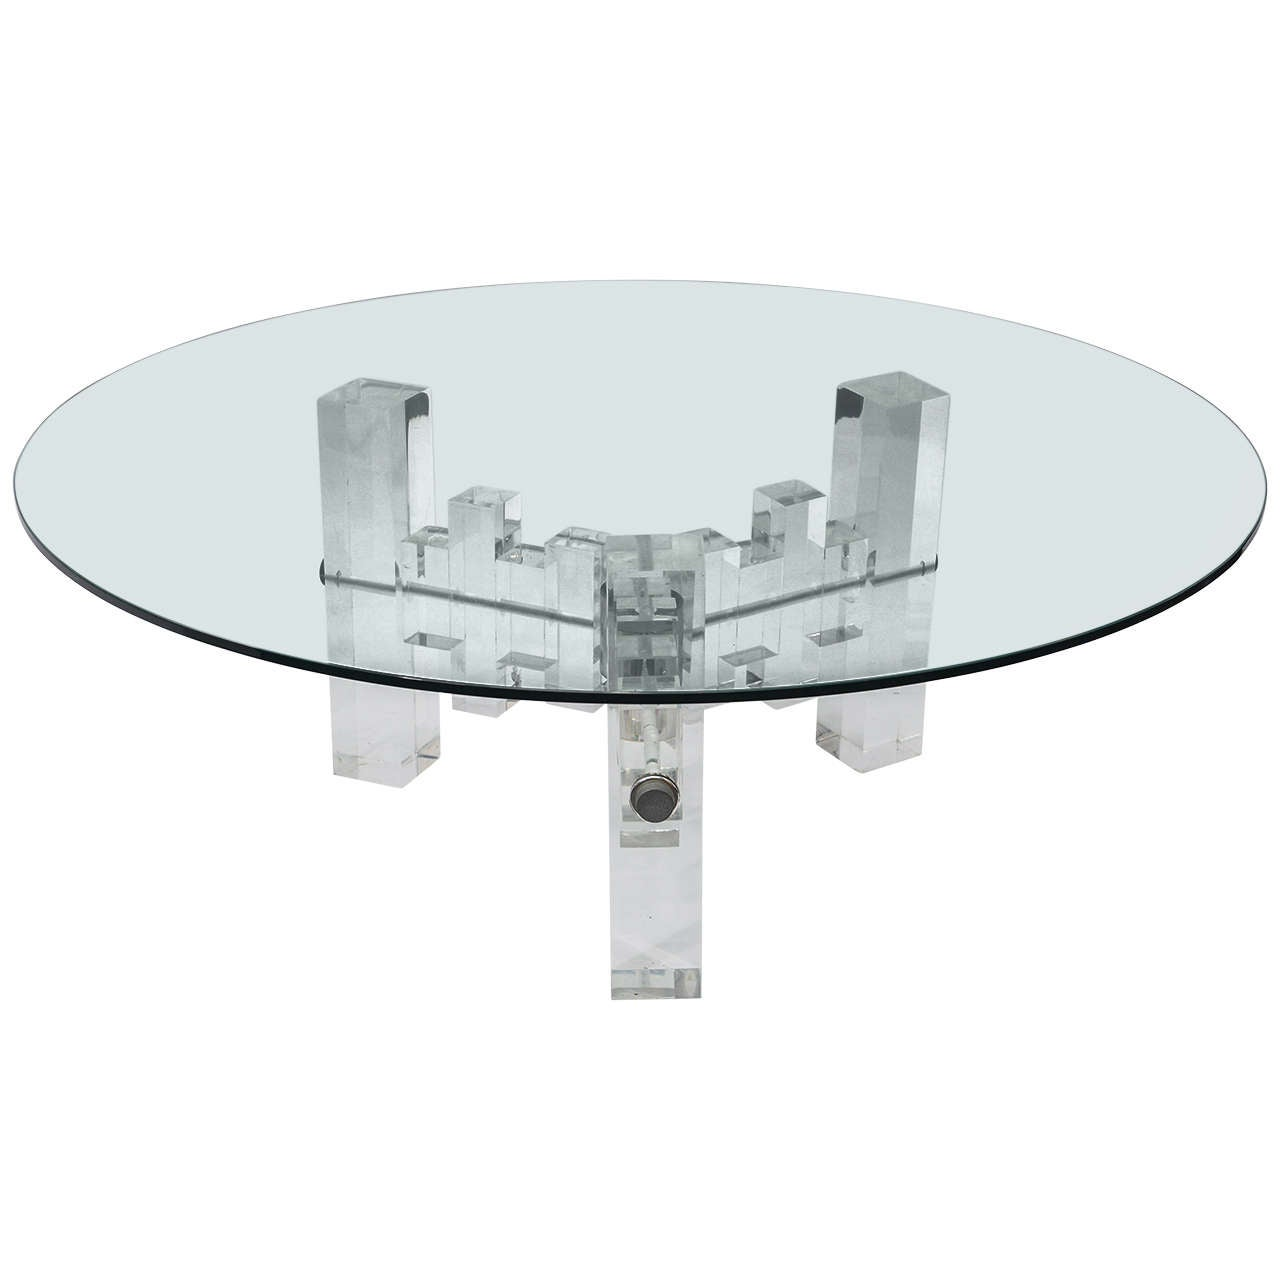 Stunning Midcentury Architectural Design, Lucite Coffee Table